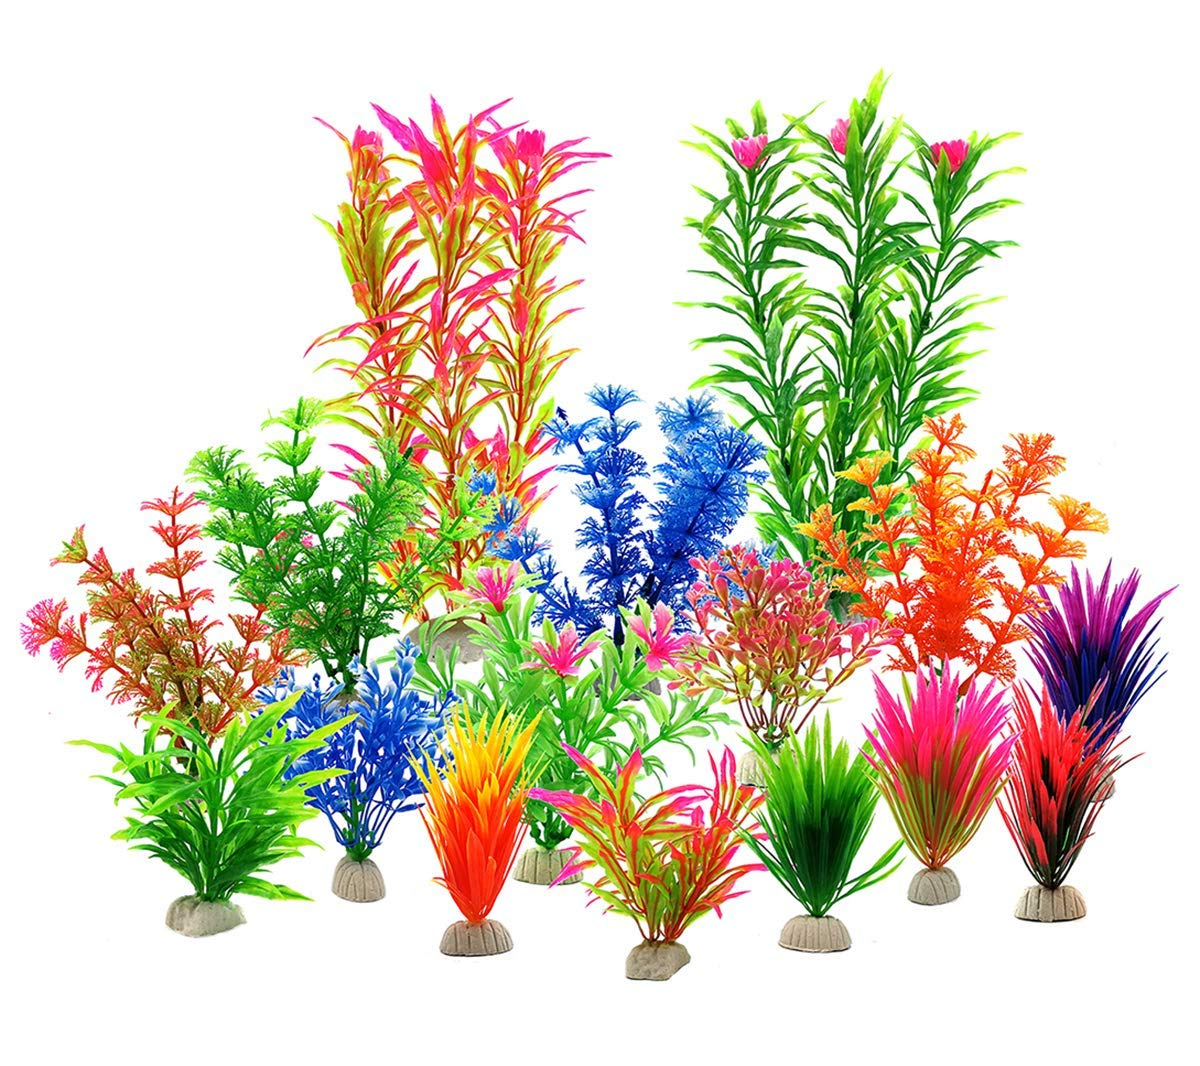 Zivisk Fish Tank Plants Aquarium Decorations Aquarium Home Decor Artificial Aquatic Plants - Plastic Vivid Simulation Plant Creature Aquarium Landscape Assorted Color